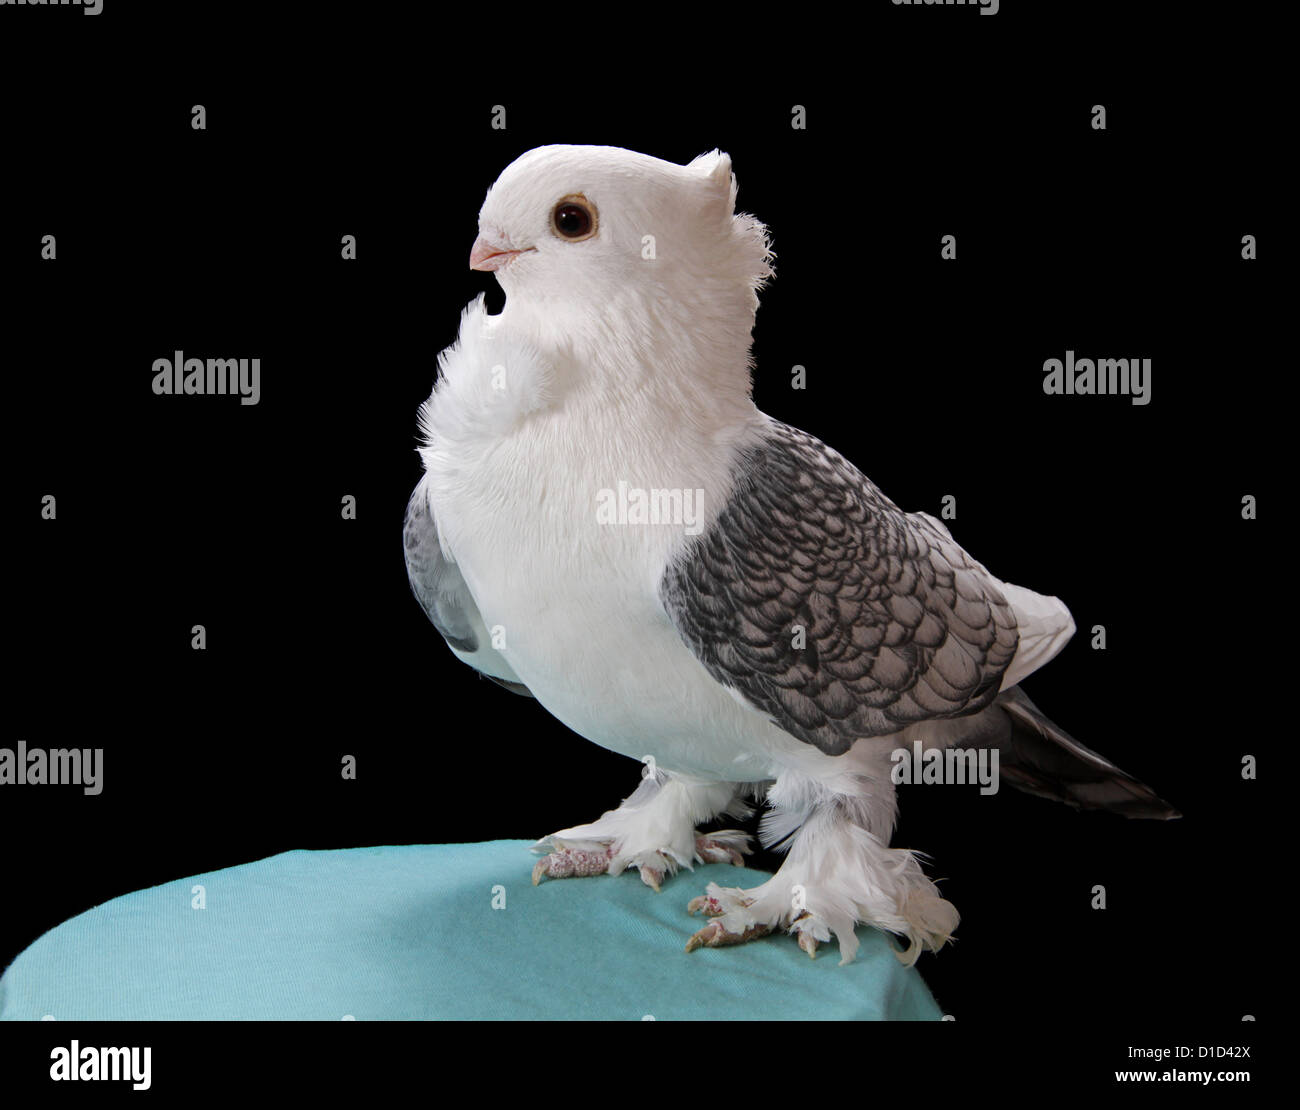 Classic Old Frill Fancy Pigeon On A Plain Black Background